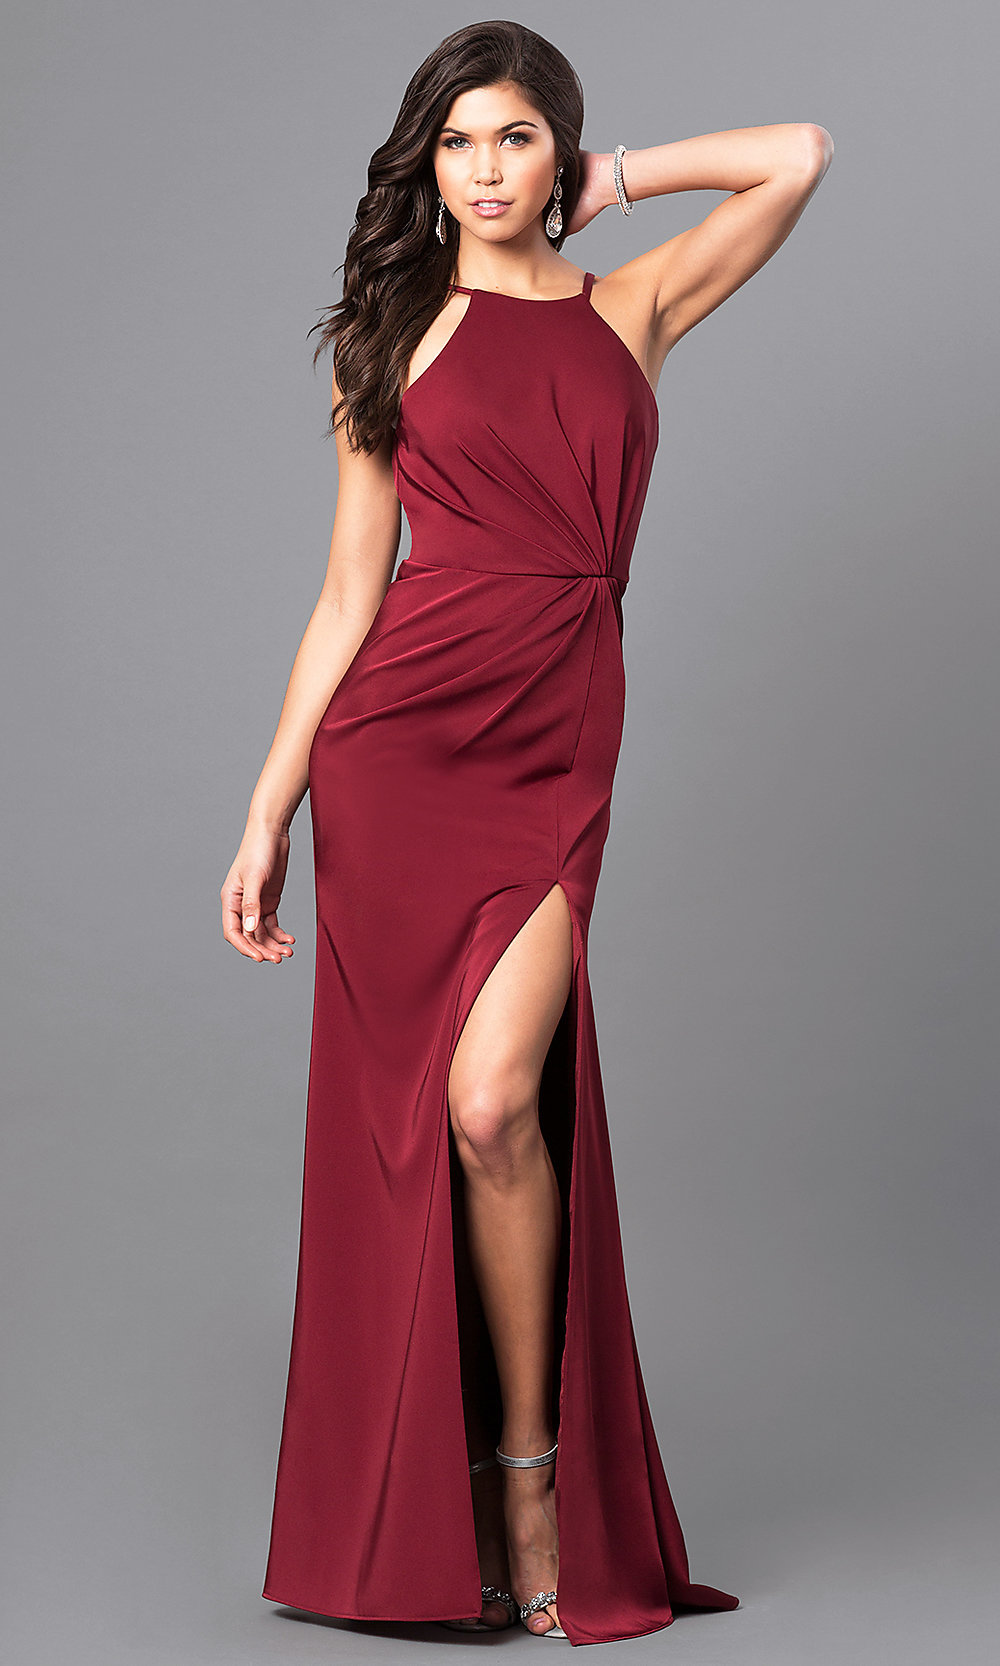 Bridesmaid dresses gowns for bridesmaids promgirl loved ombrellifo Choice Image